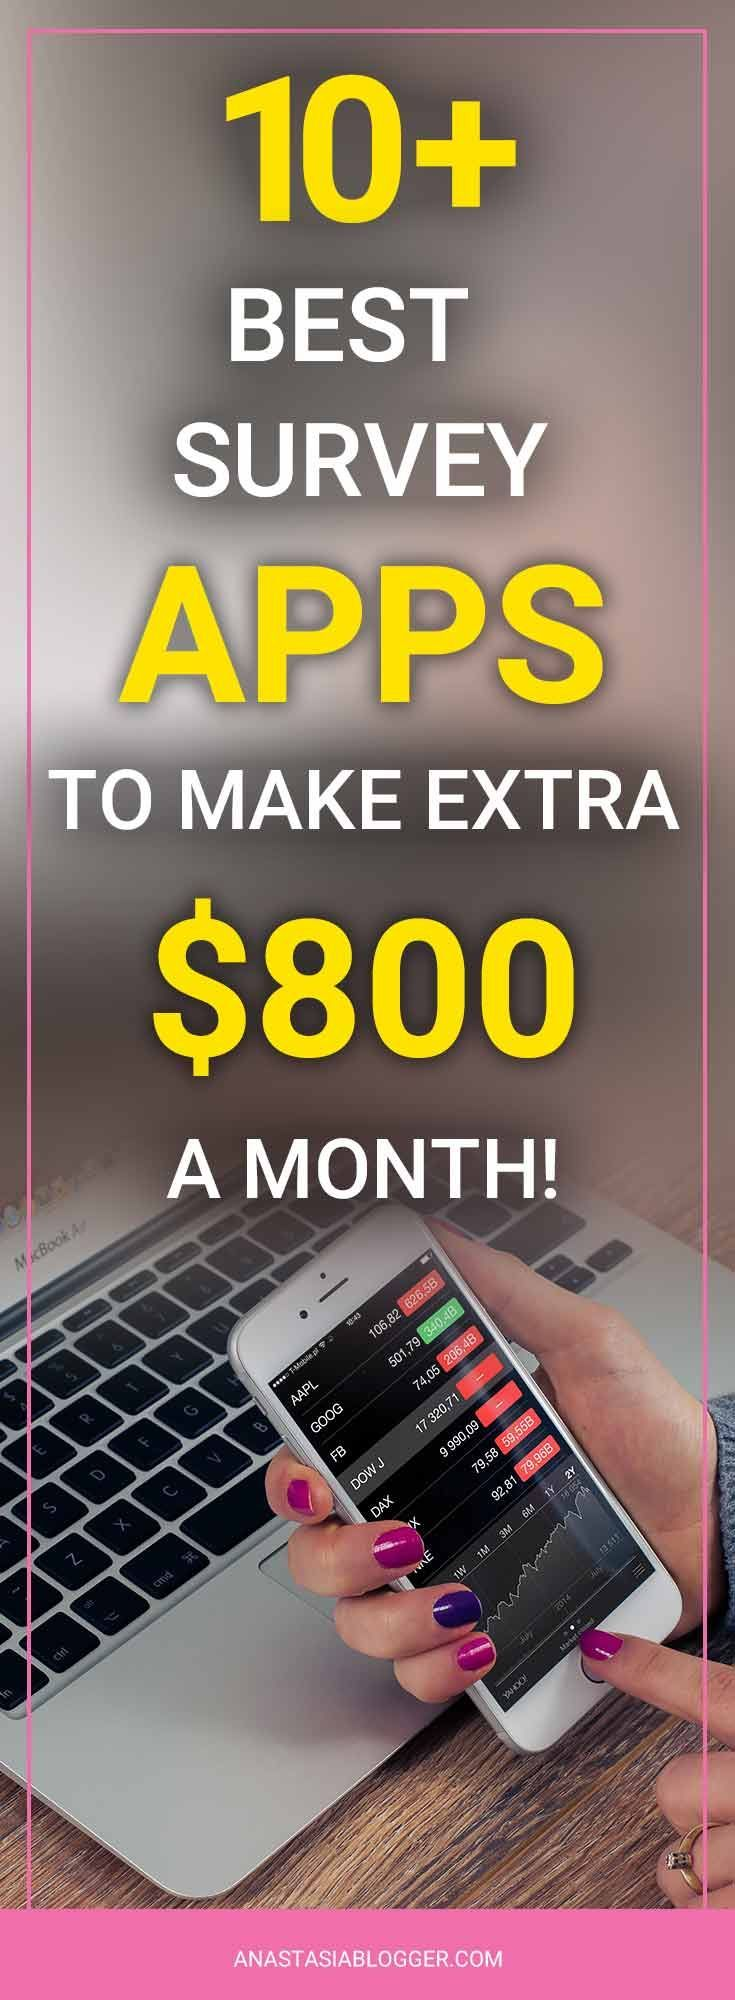 Wanna know how she makes $800 a month from her smartphone? Check the list of Survey Apps that pay, install survey apps extra money. You'll find here survey apps that pay gift cards, survey apps that pay extra cash, survey apps that pay smartphone, survey